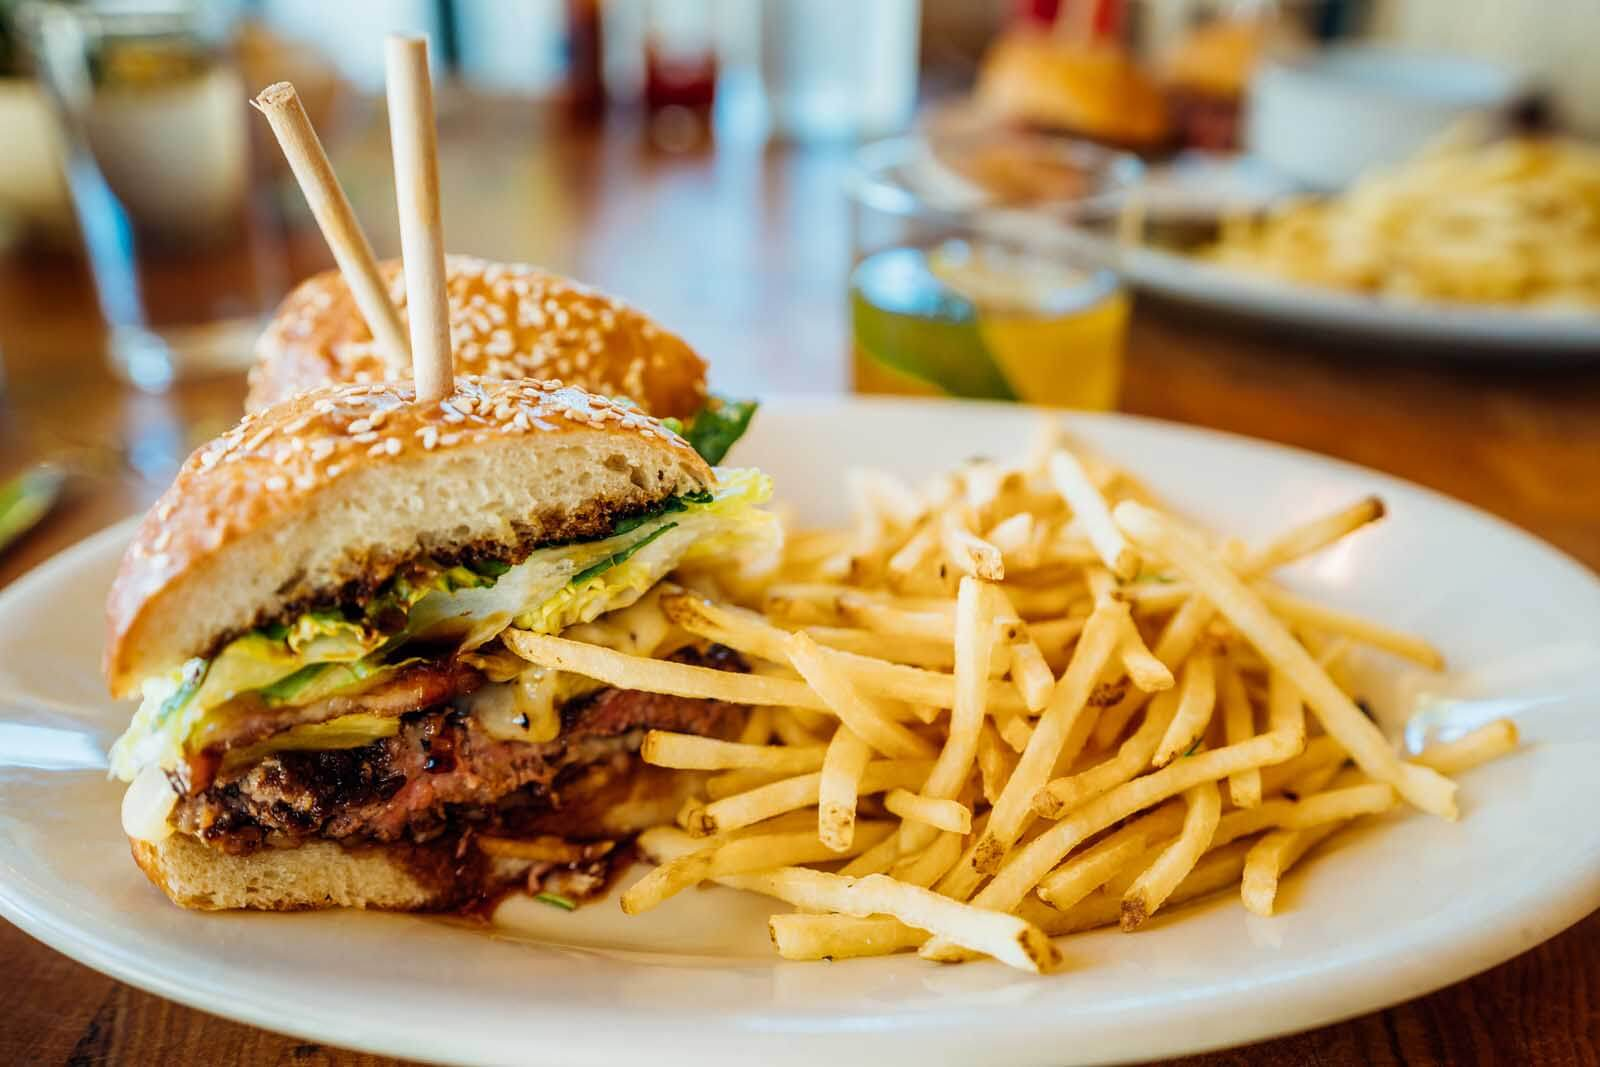 Burger and Fries at Cowiche Canyon Kitchen & Icehouse